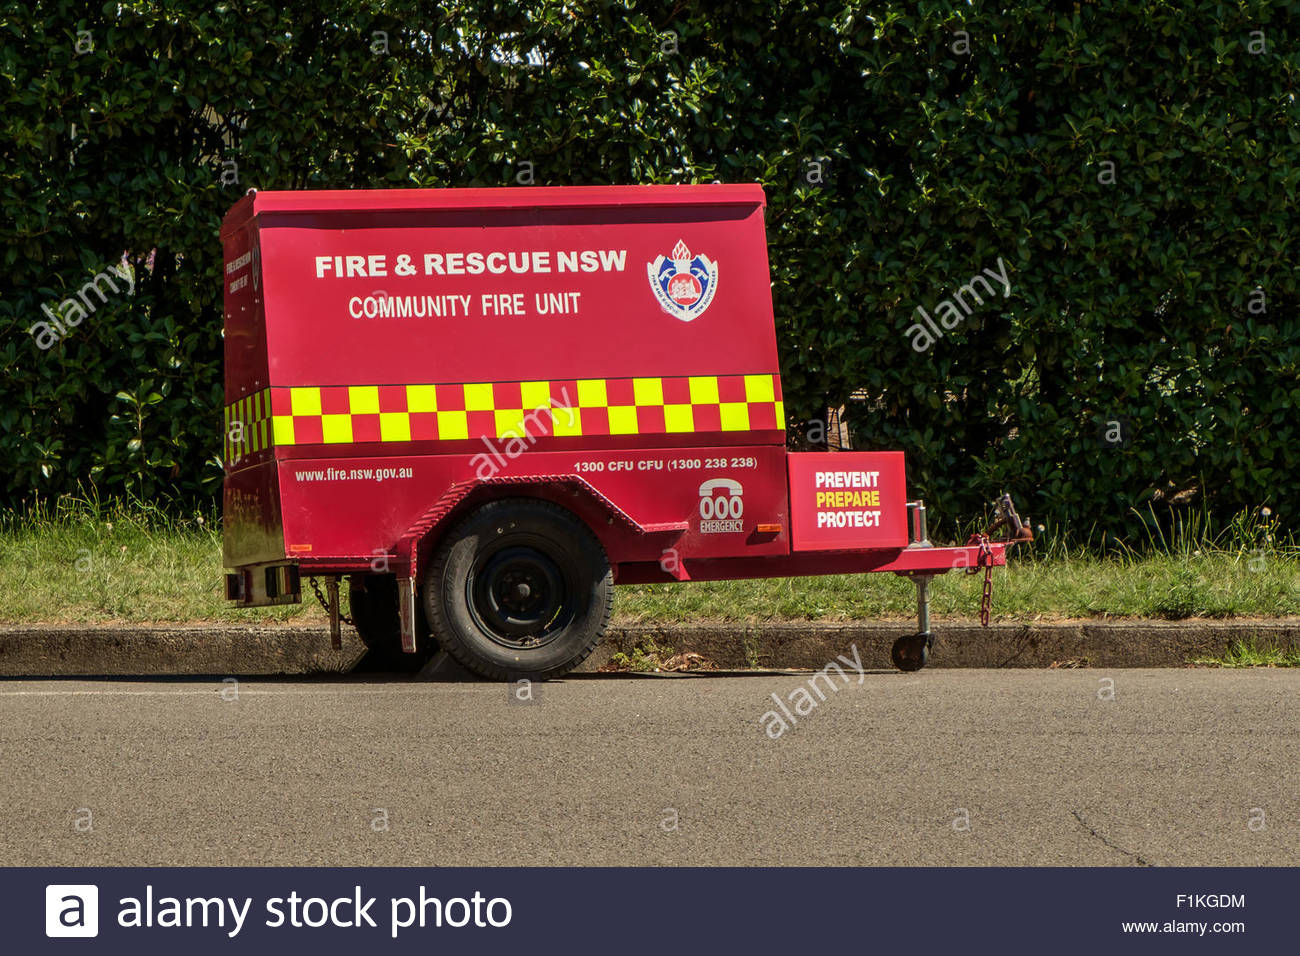 A New South Wales community fire unit trailer parked at the roadside in Leura town in the Blue Mountains, Australia. - Stock Image